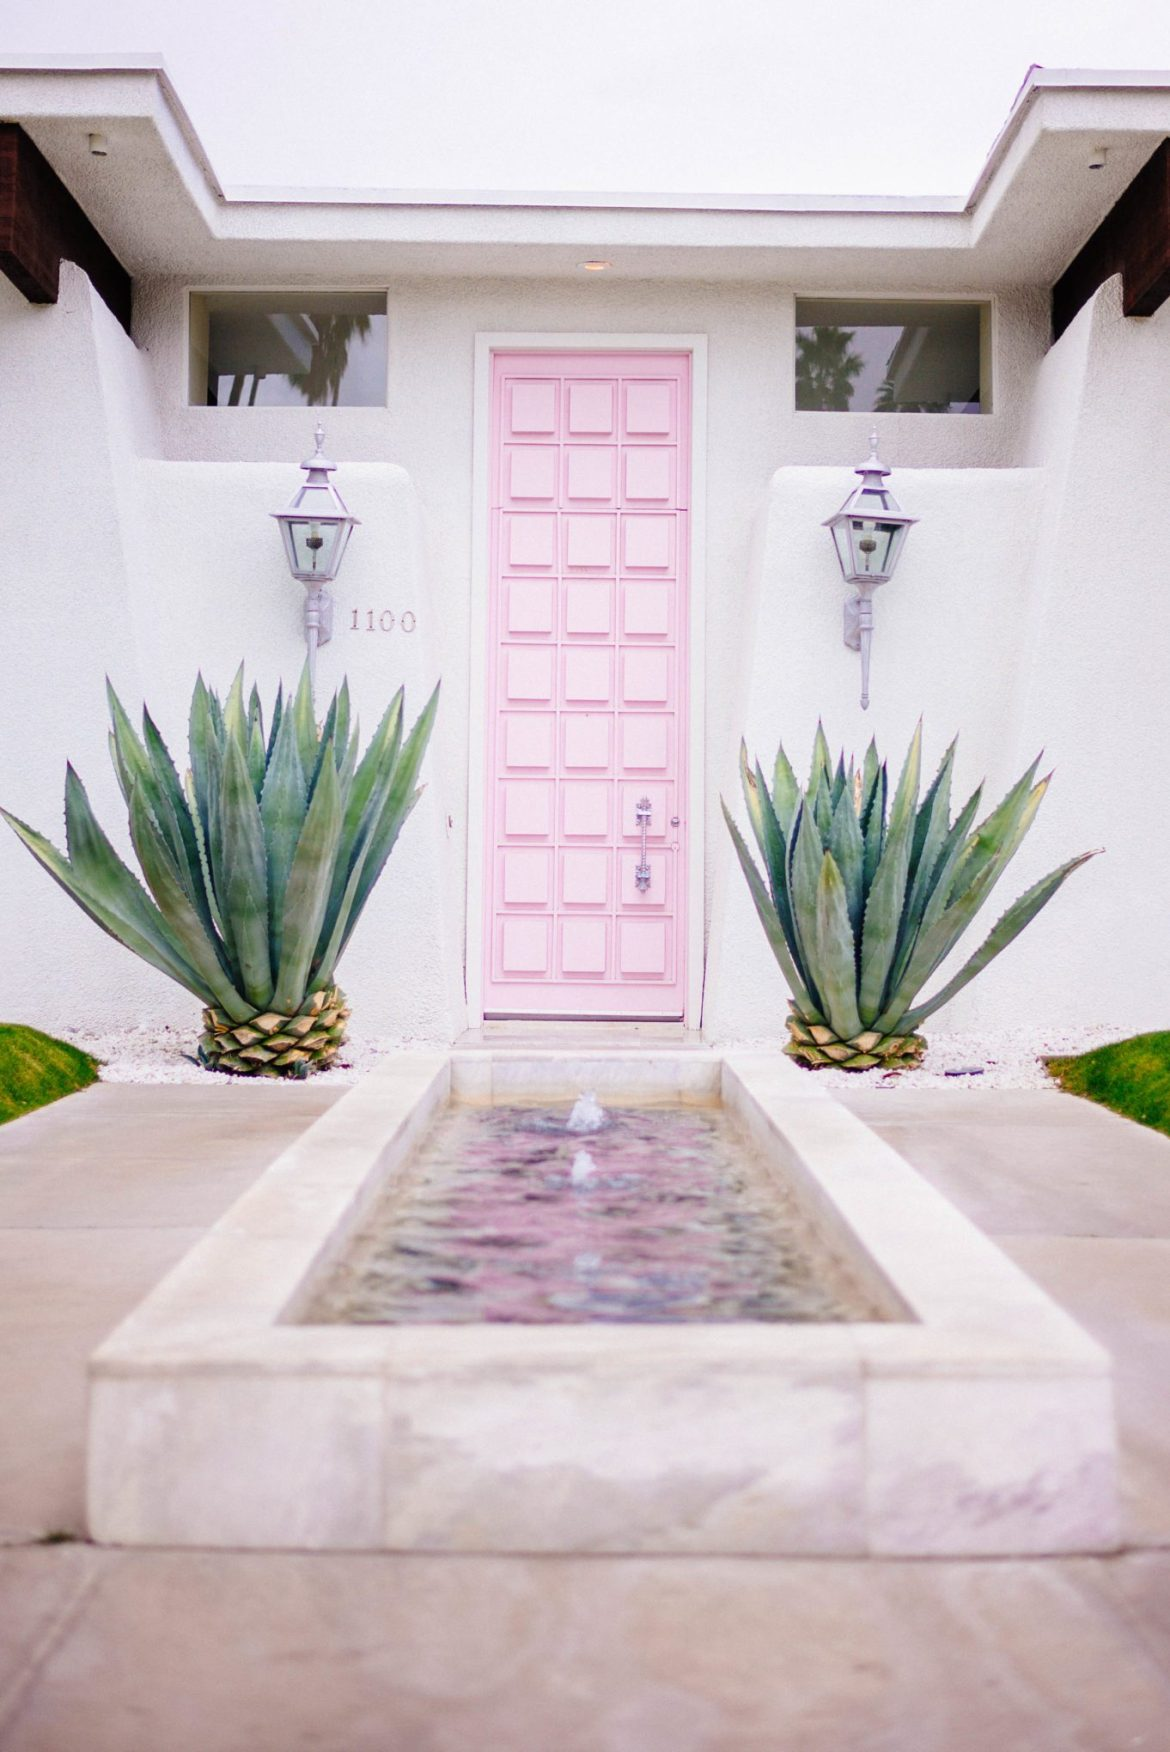 The Taste Edit takes you behind the Instagram photo sensation That Pink Door in Palm Springs. Explore the interior decor in this mid-century Palm Springs house.